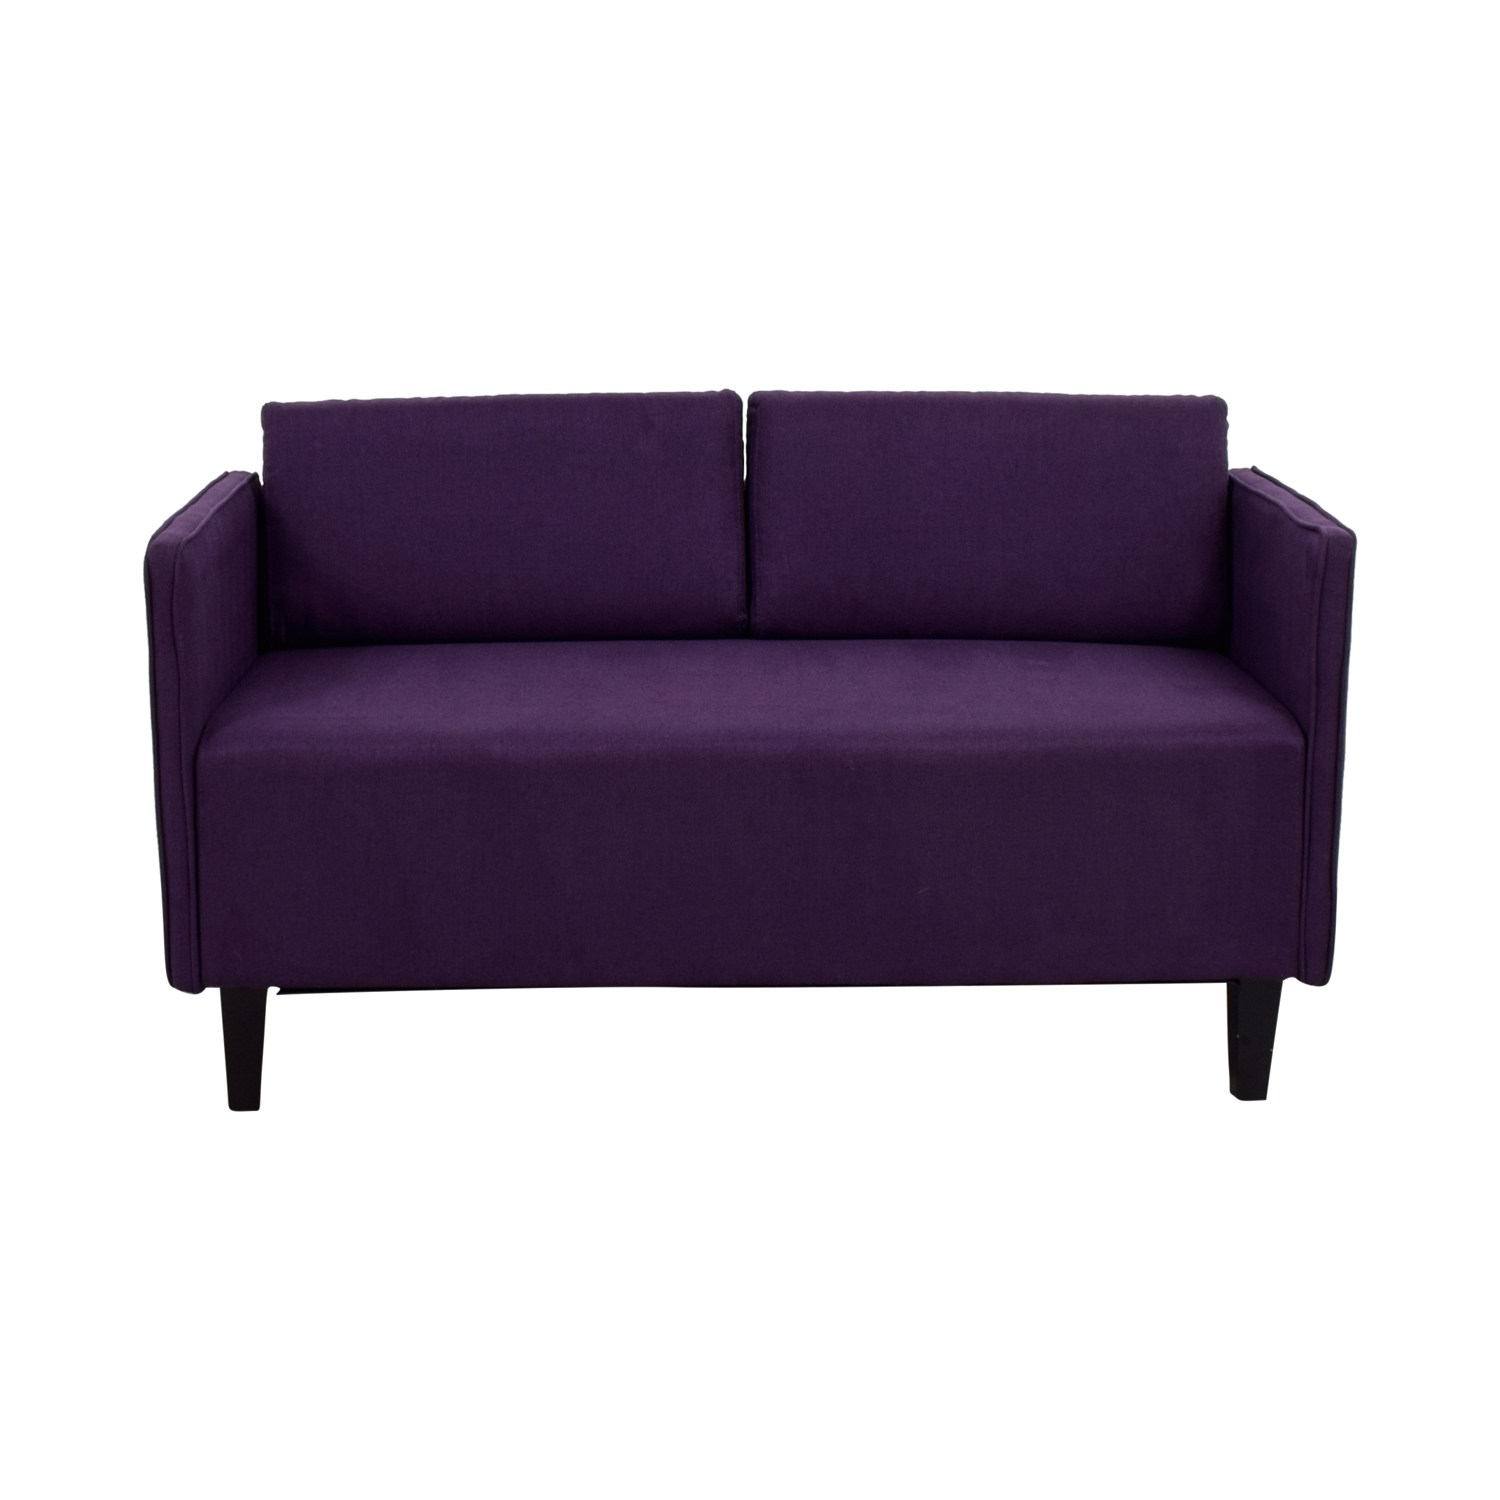 Ebern Designs Ebern Designs Dempsey Purple Herringbone Loveseat nj